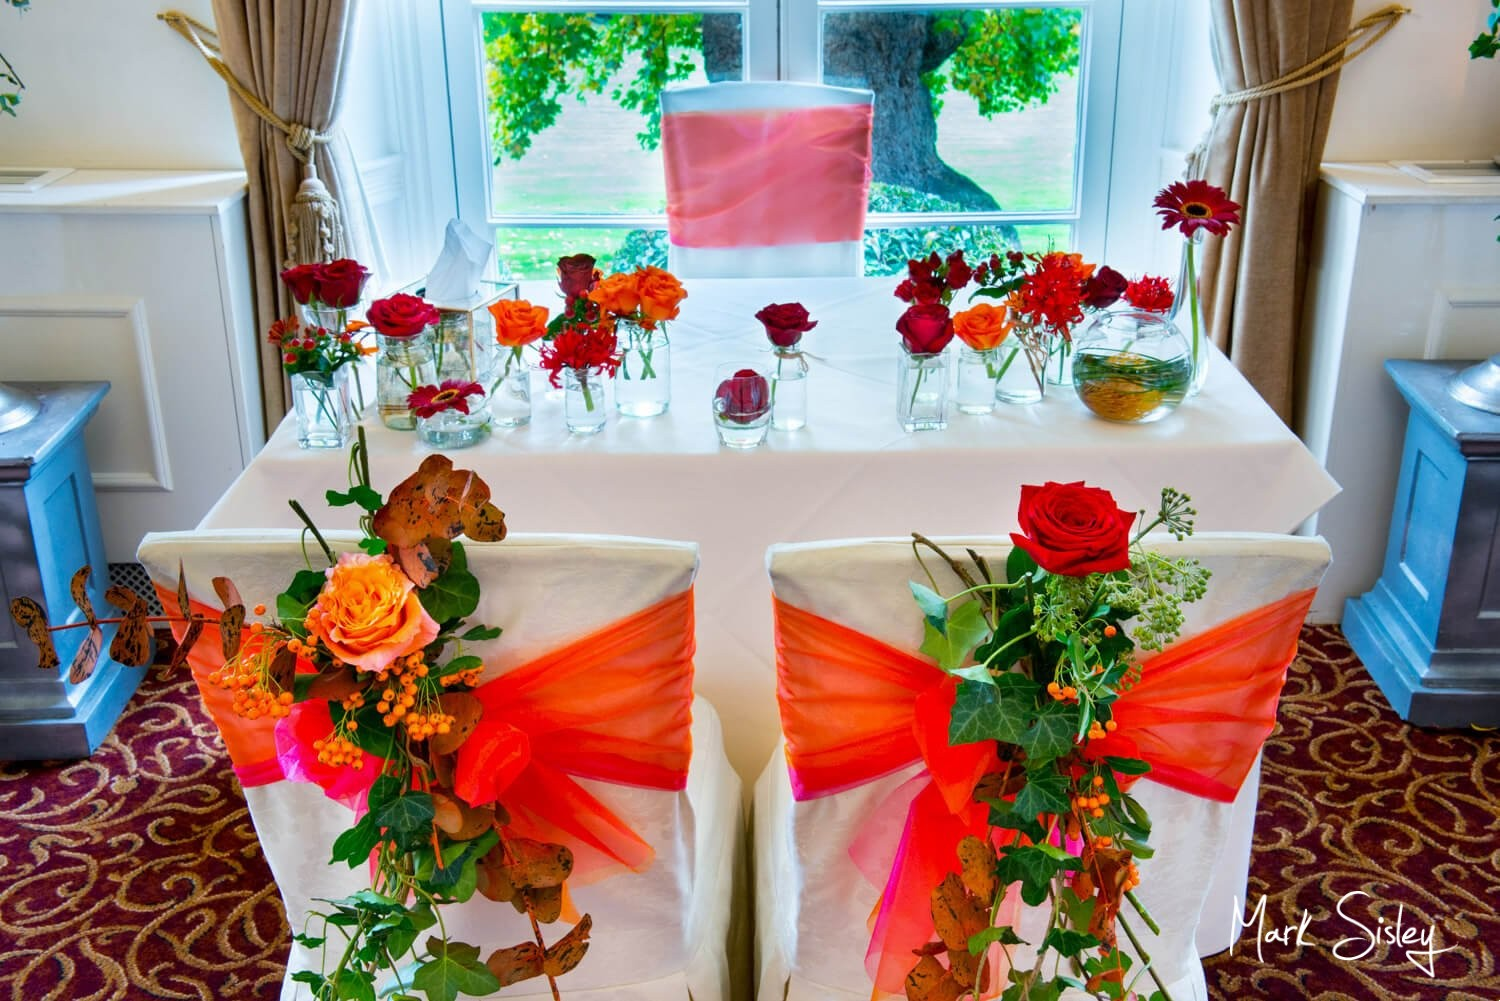 Taplow House autumn wedding - floral decorations